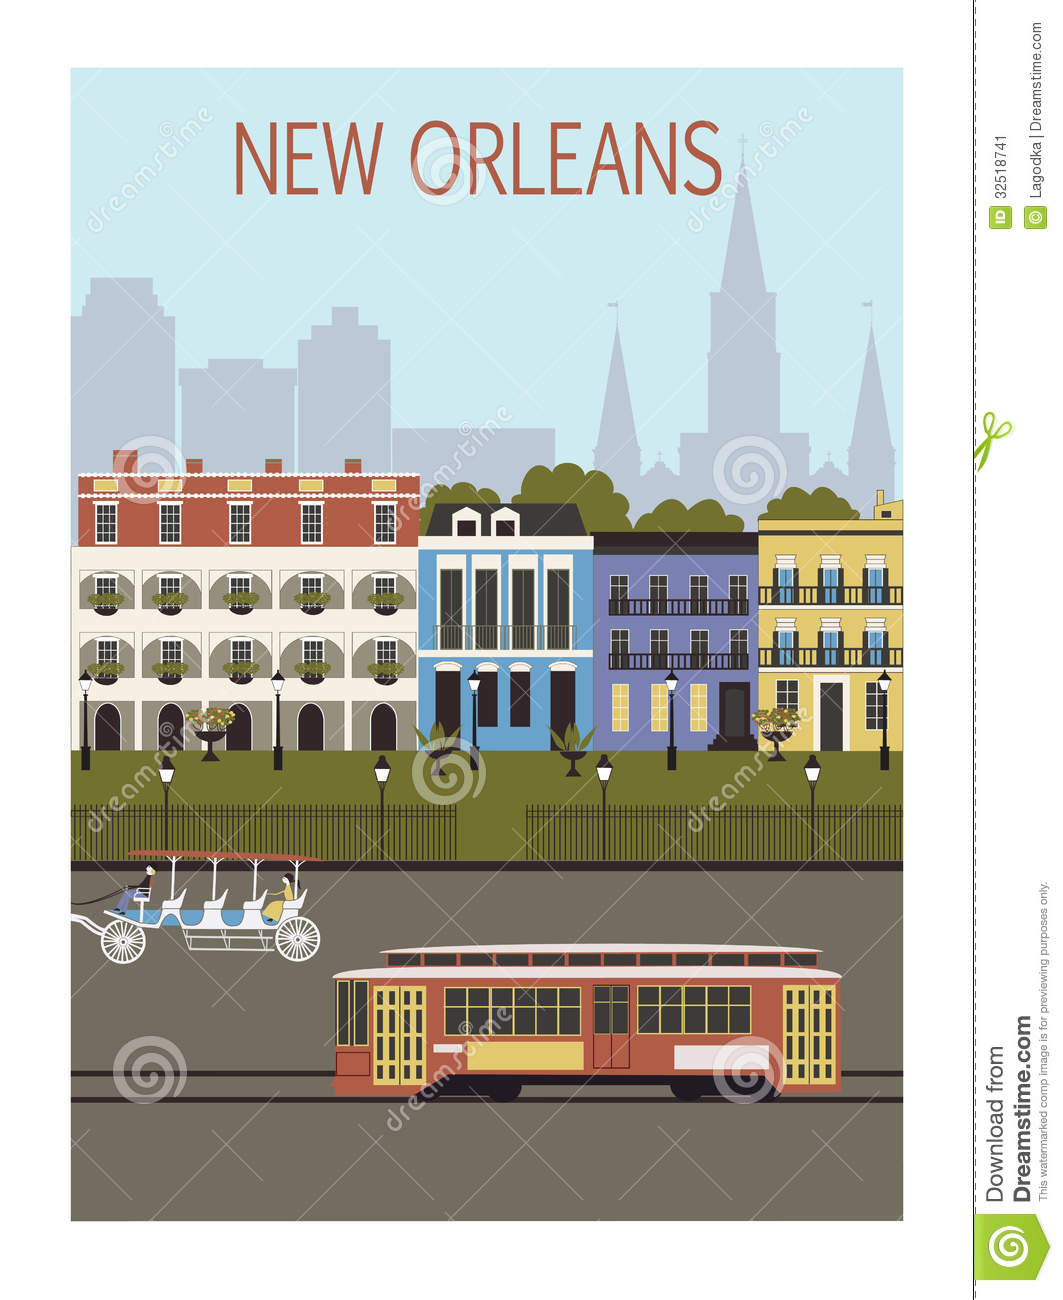 New Orleans City Stock Vector Image Of Culture Locations 32518741